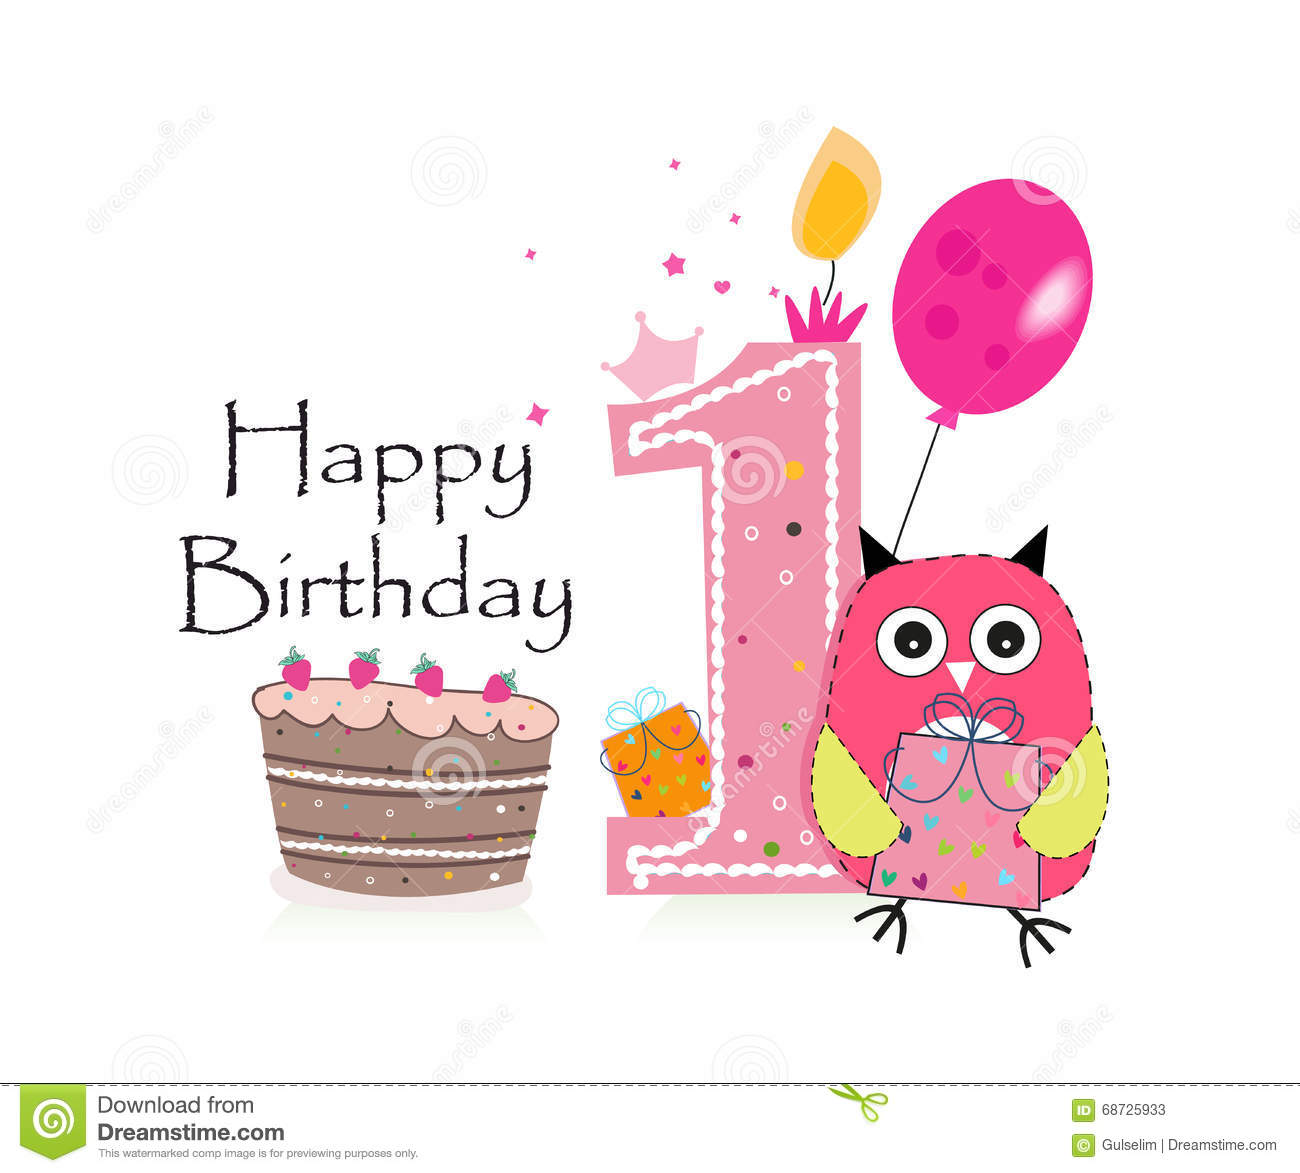 First Birthday Greeting Card. Cute Pink Owl, Balloon And Birthday Cake Vector...